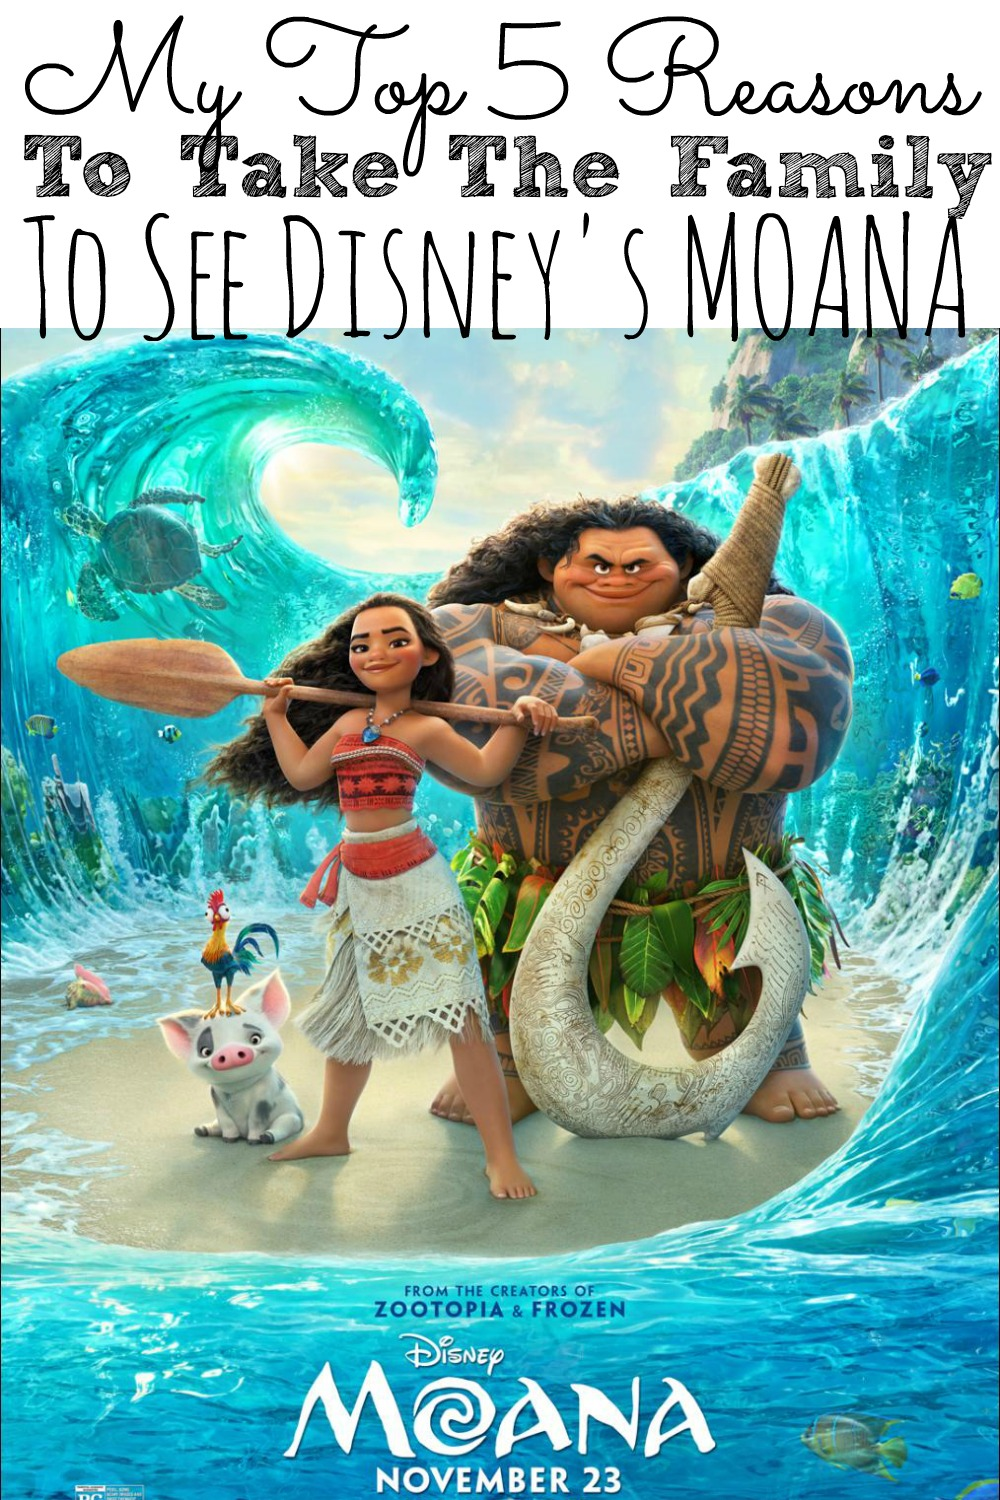 My Top 5 Reasons To Take The Family To See Moana